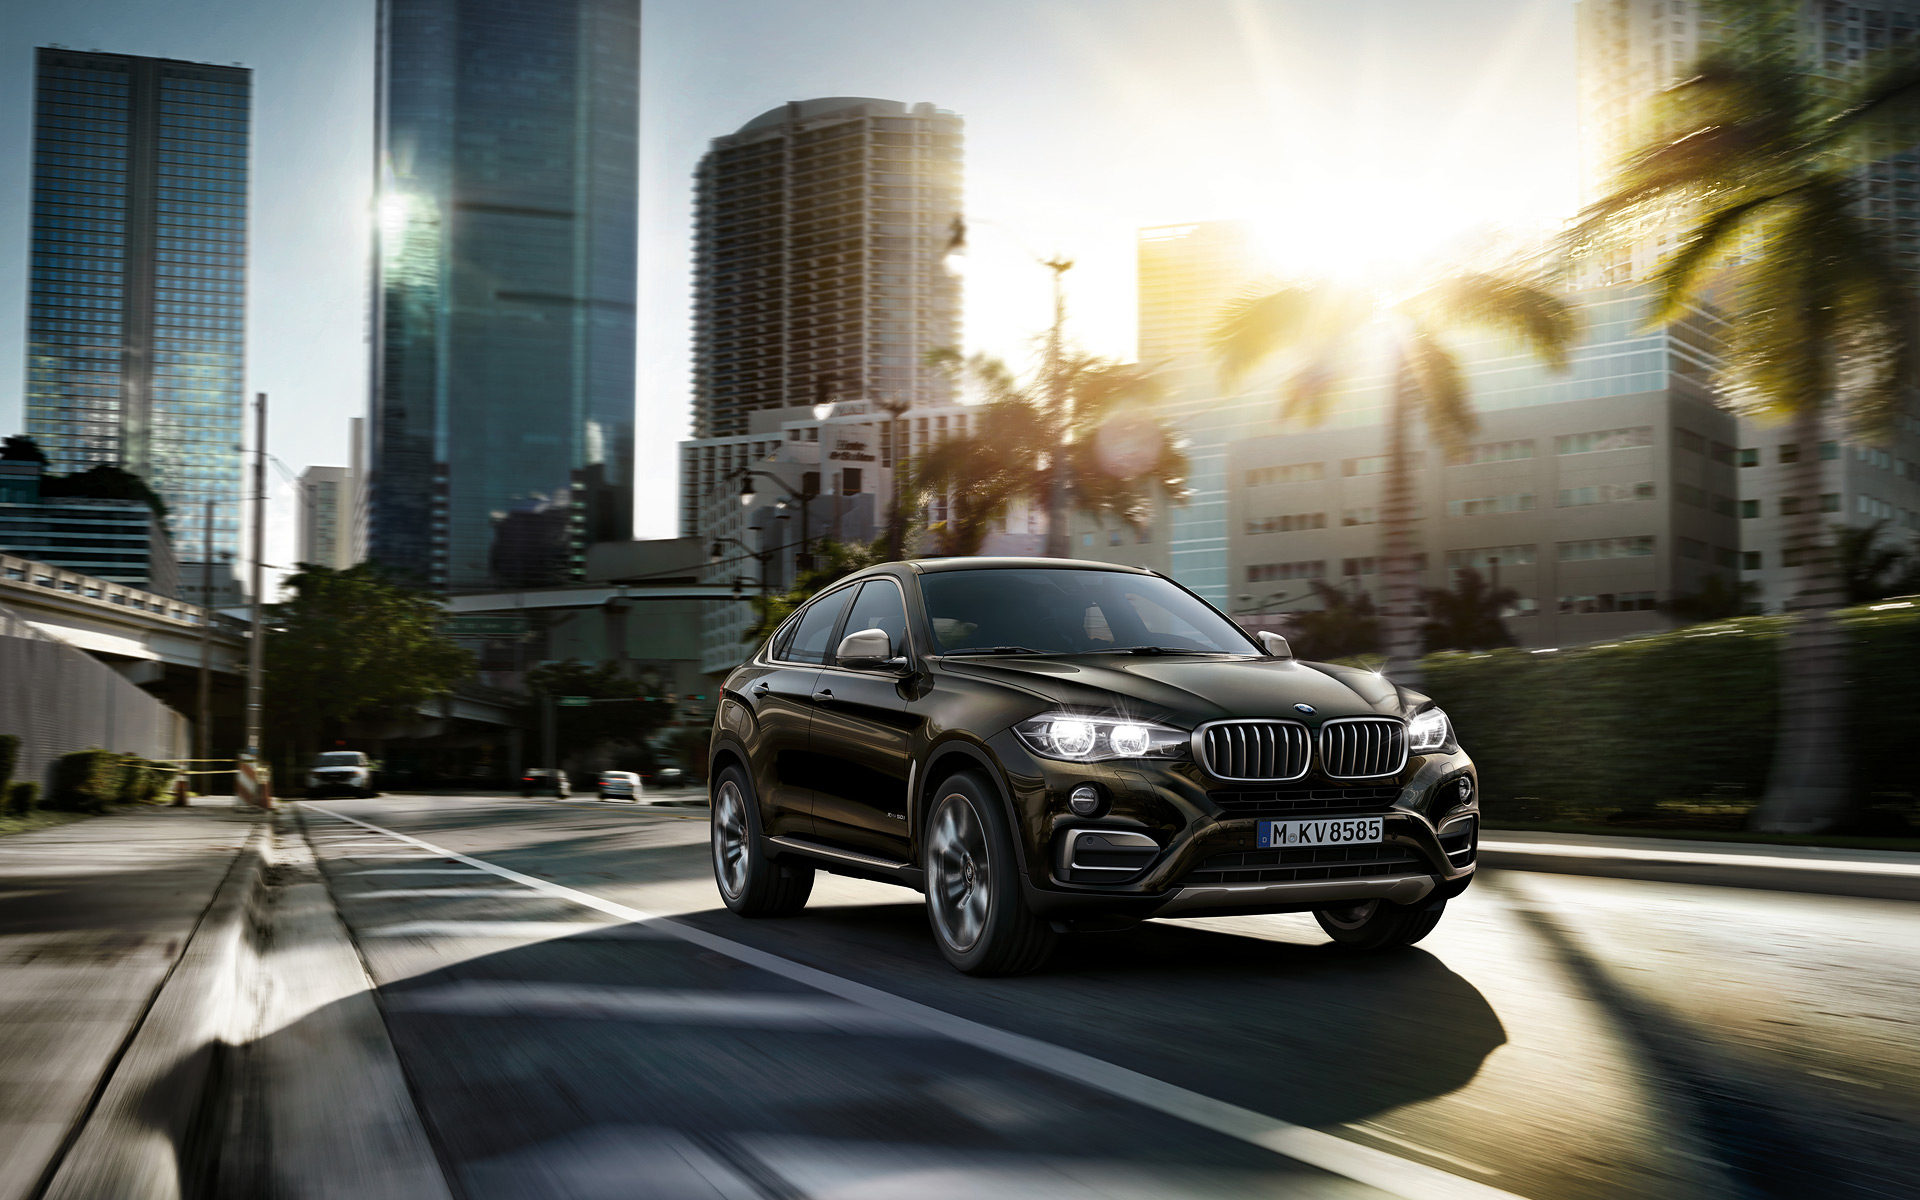 Bmw X6 Bmw Forum Bmw News And Bmw Blog Bimmerpost